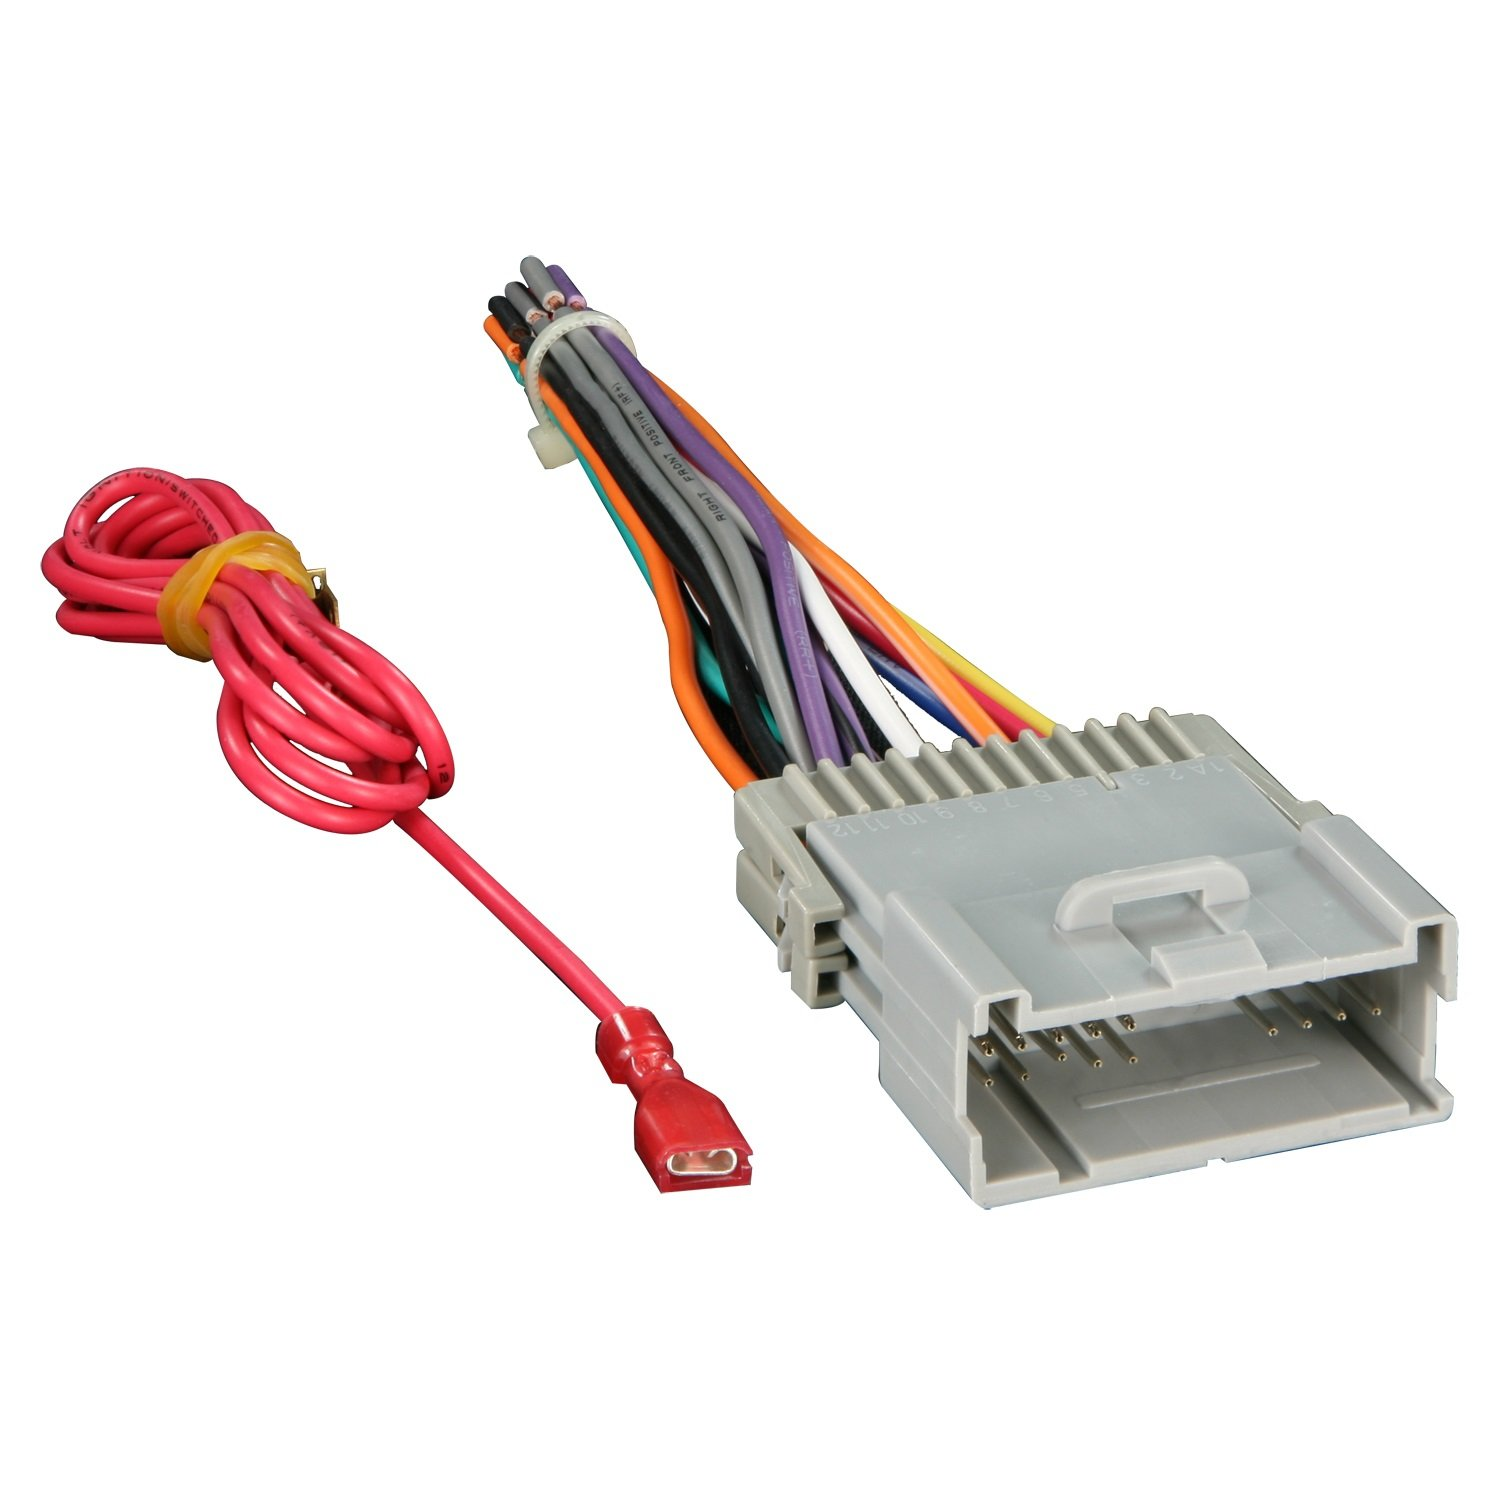 61eewxp9orL._SL1500_ amazon com metra 70 2003 radio wiring harness for gm 98 08 2004 chevrolet trailblazer radio wiring at bayanpartner.co